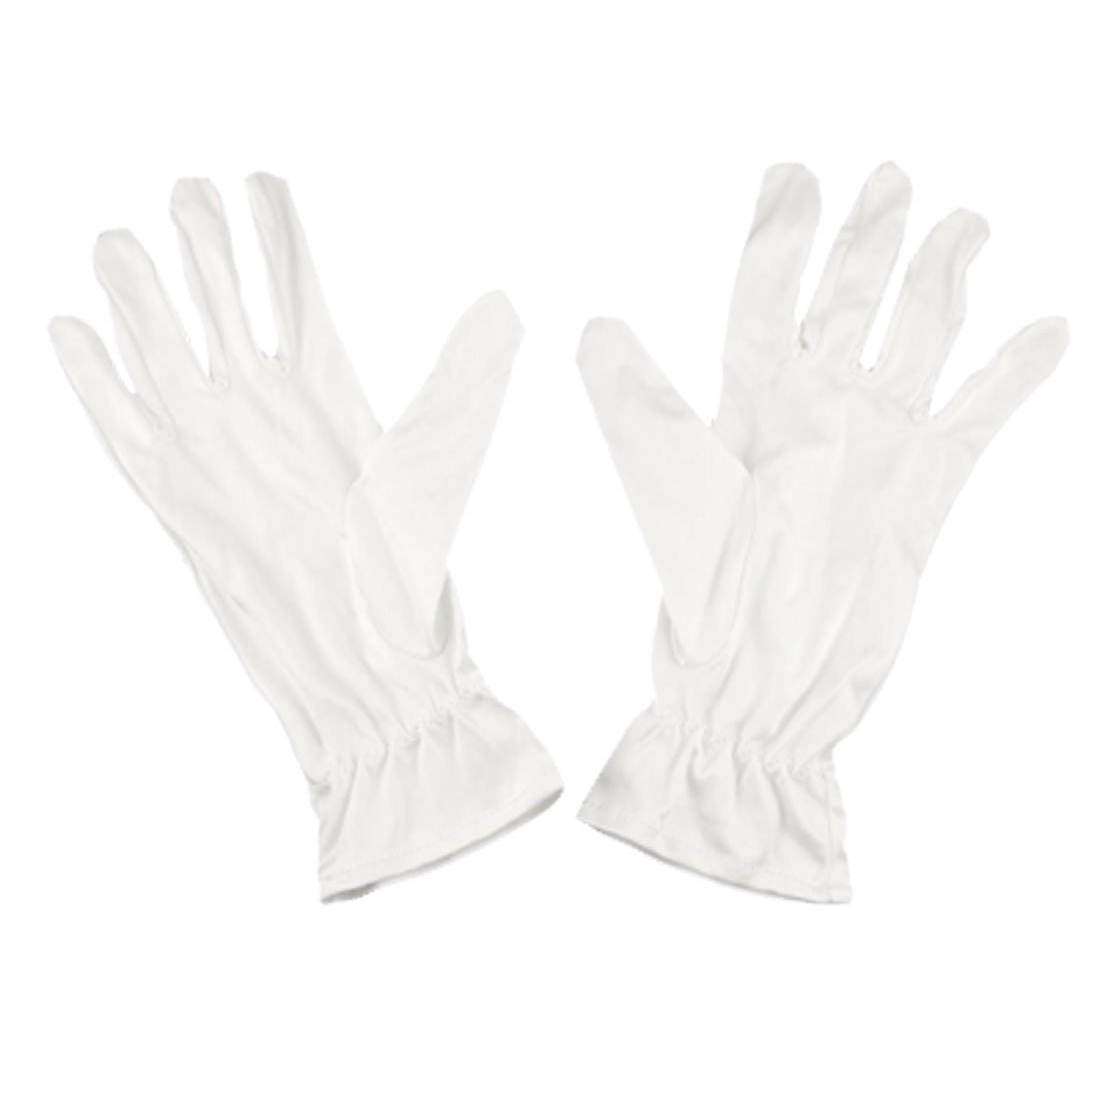 MOOL White Mini Faser Dust Proof Jewelry Silver Inspection Gloves